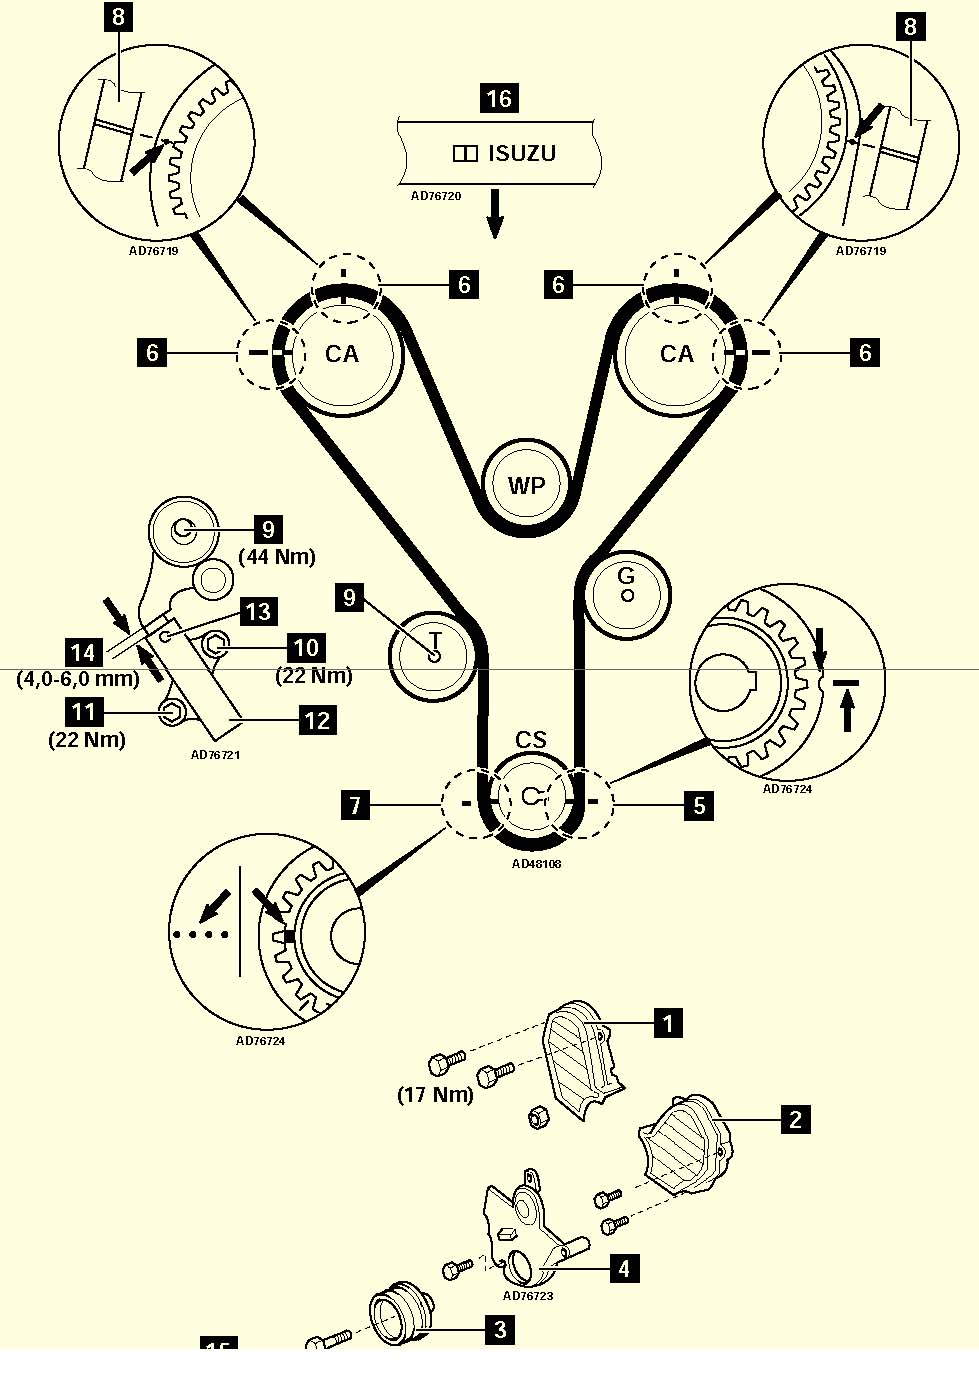 nissan sentra 1993 1 6 engine diagram get free image about wiring diagram